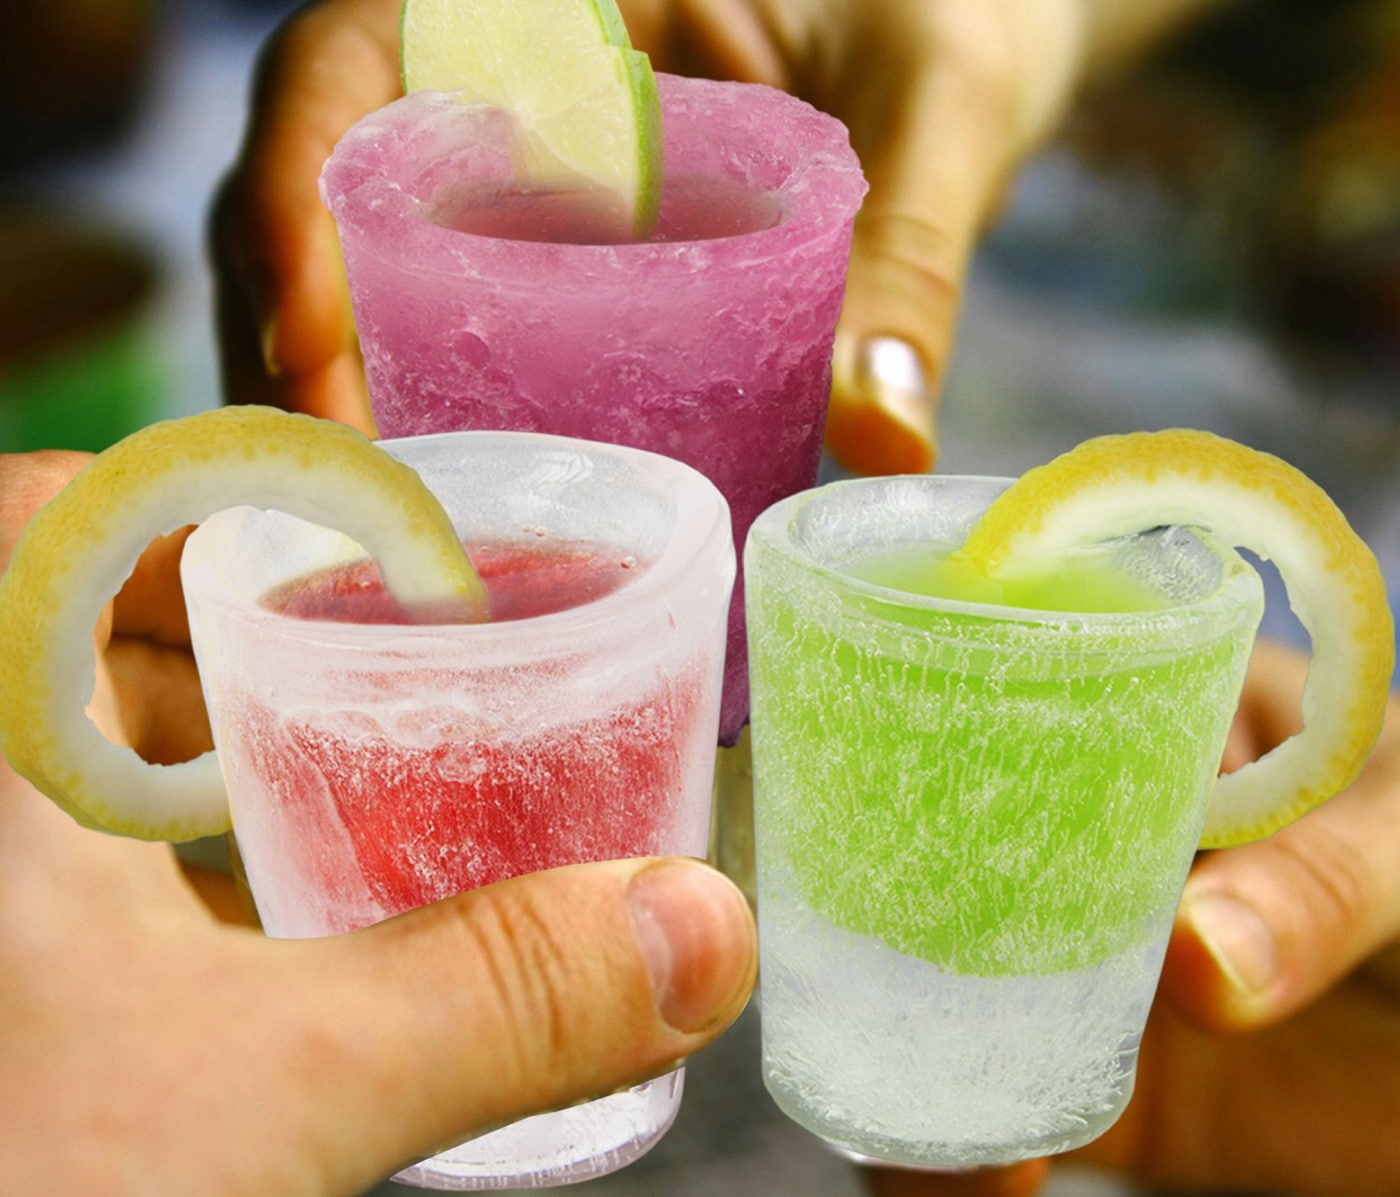 Ice Molds Party Glasses: The Glass Melts Away As You Sip Your Drink